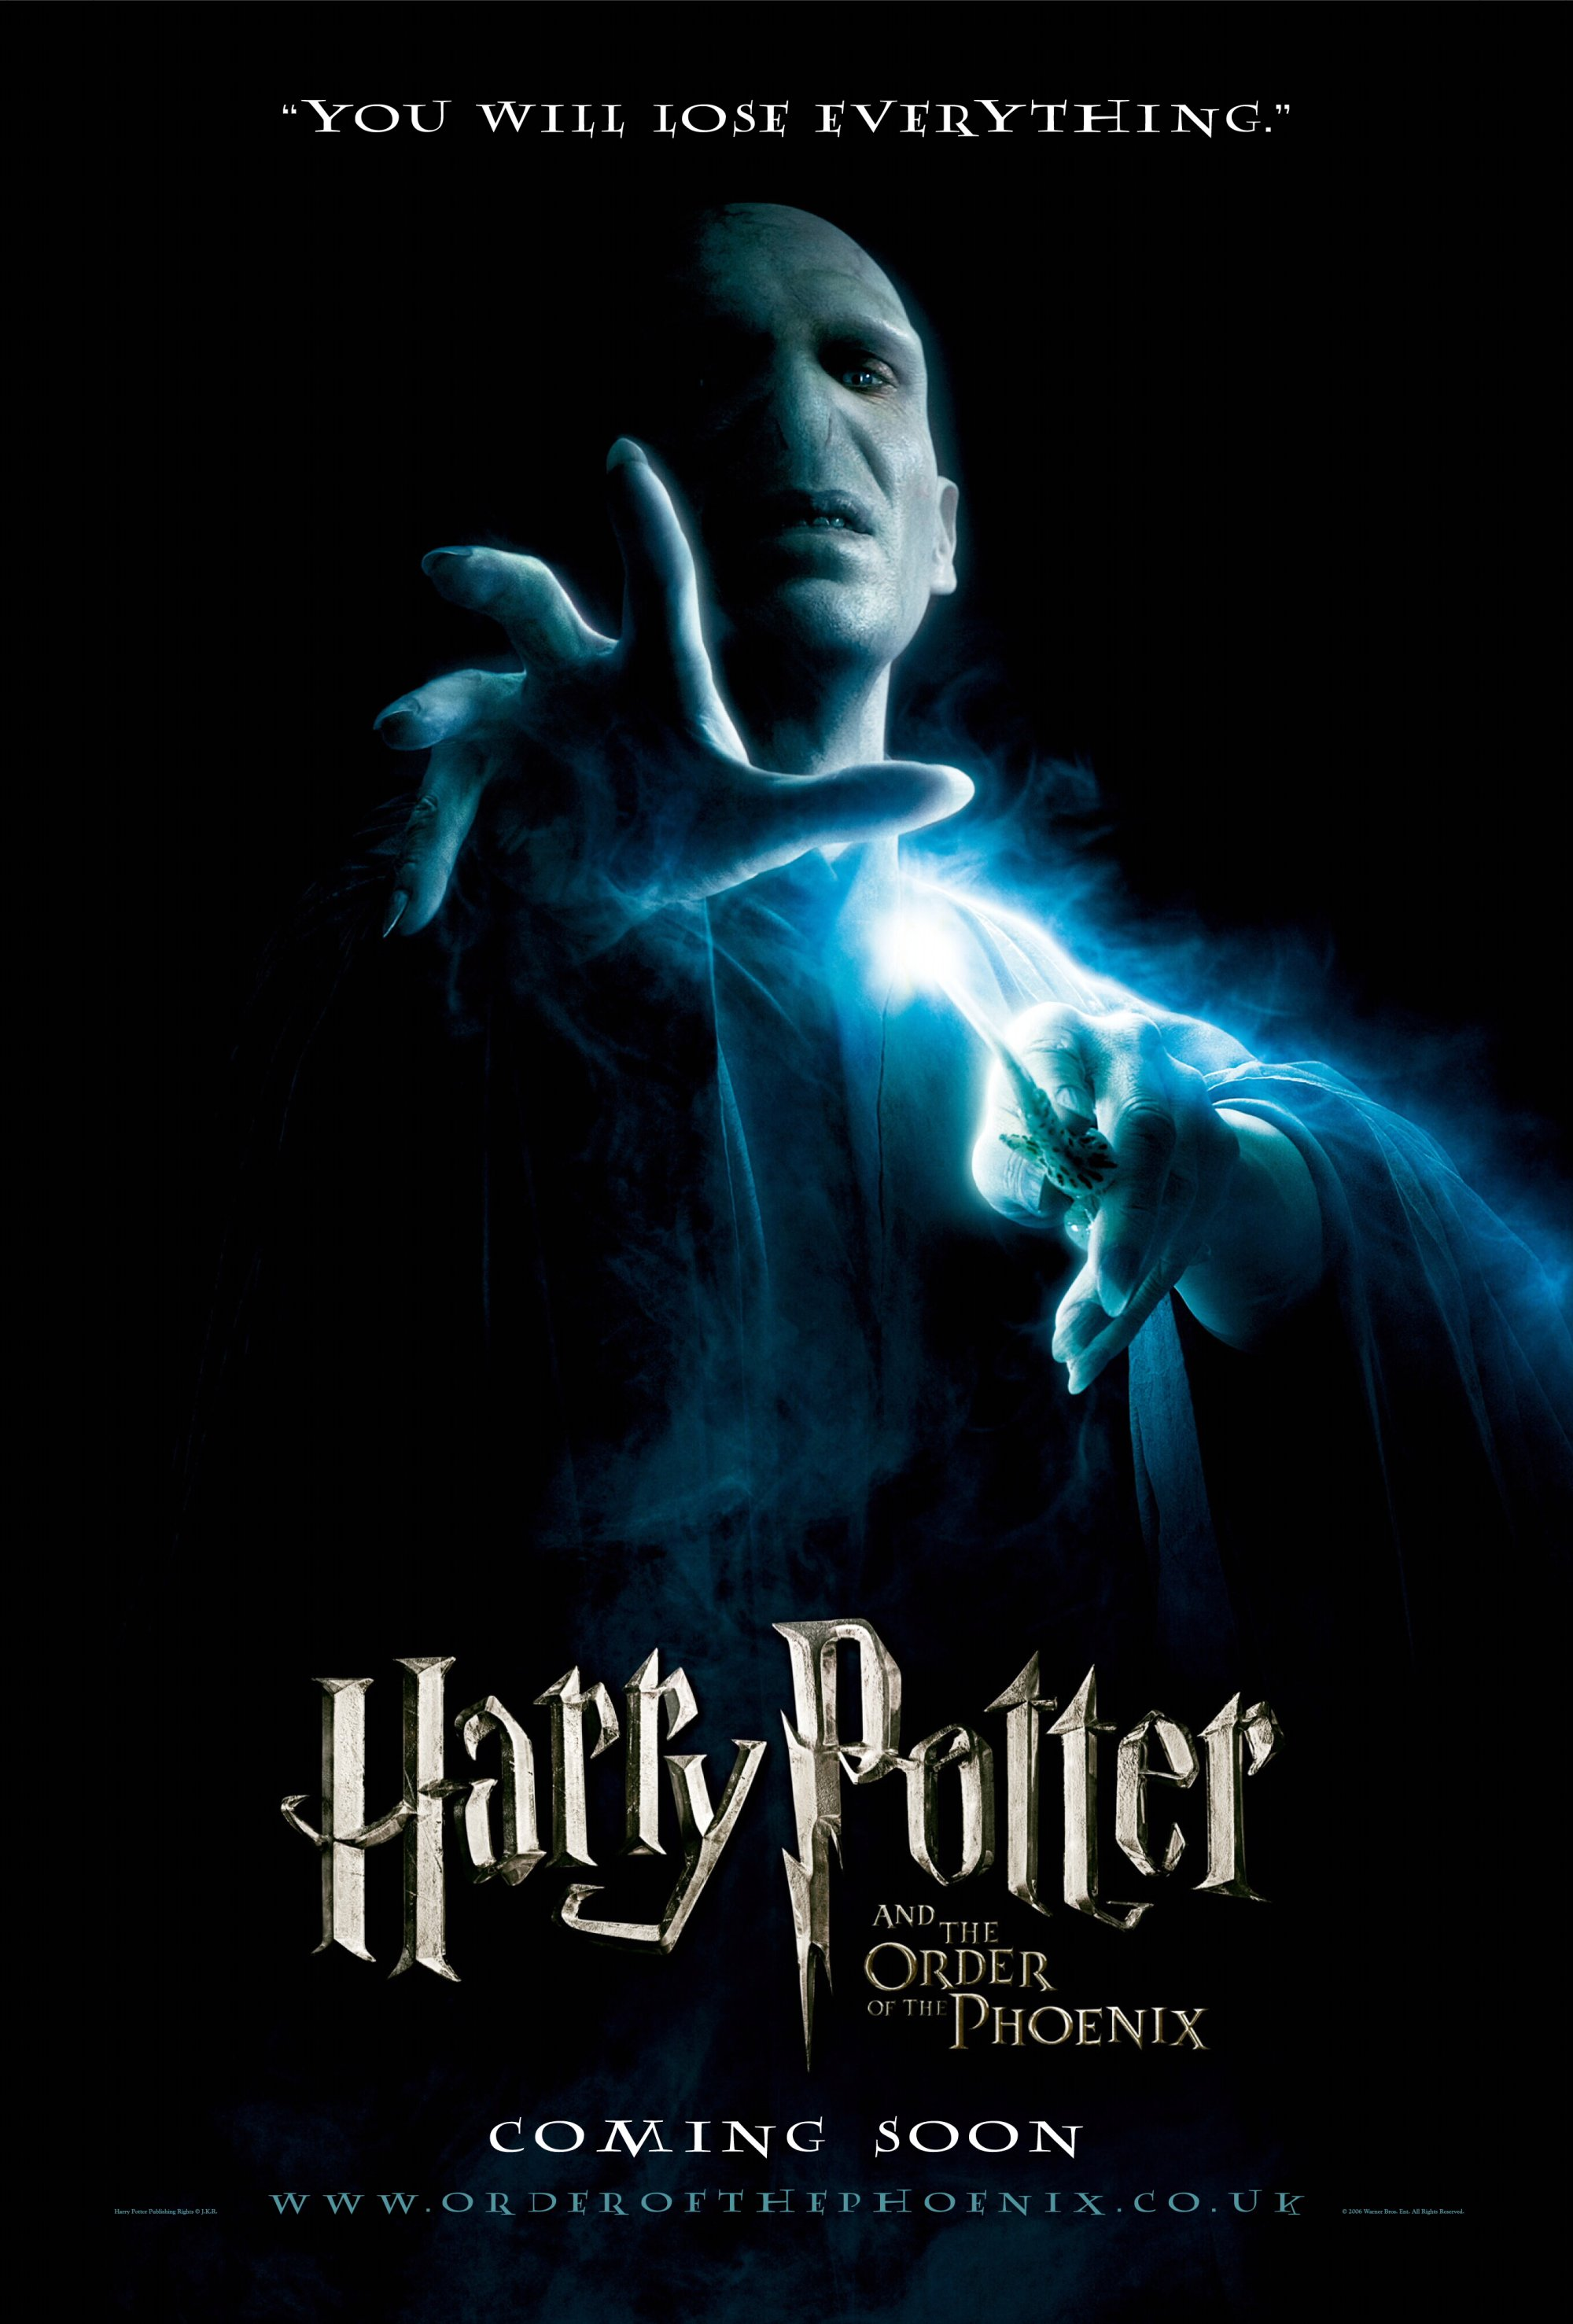 Harry Potter and the Order of the Phoenix film